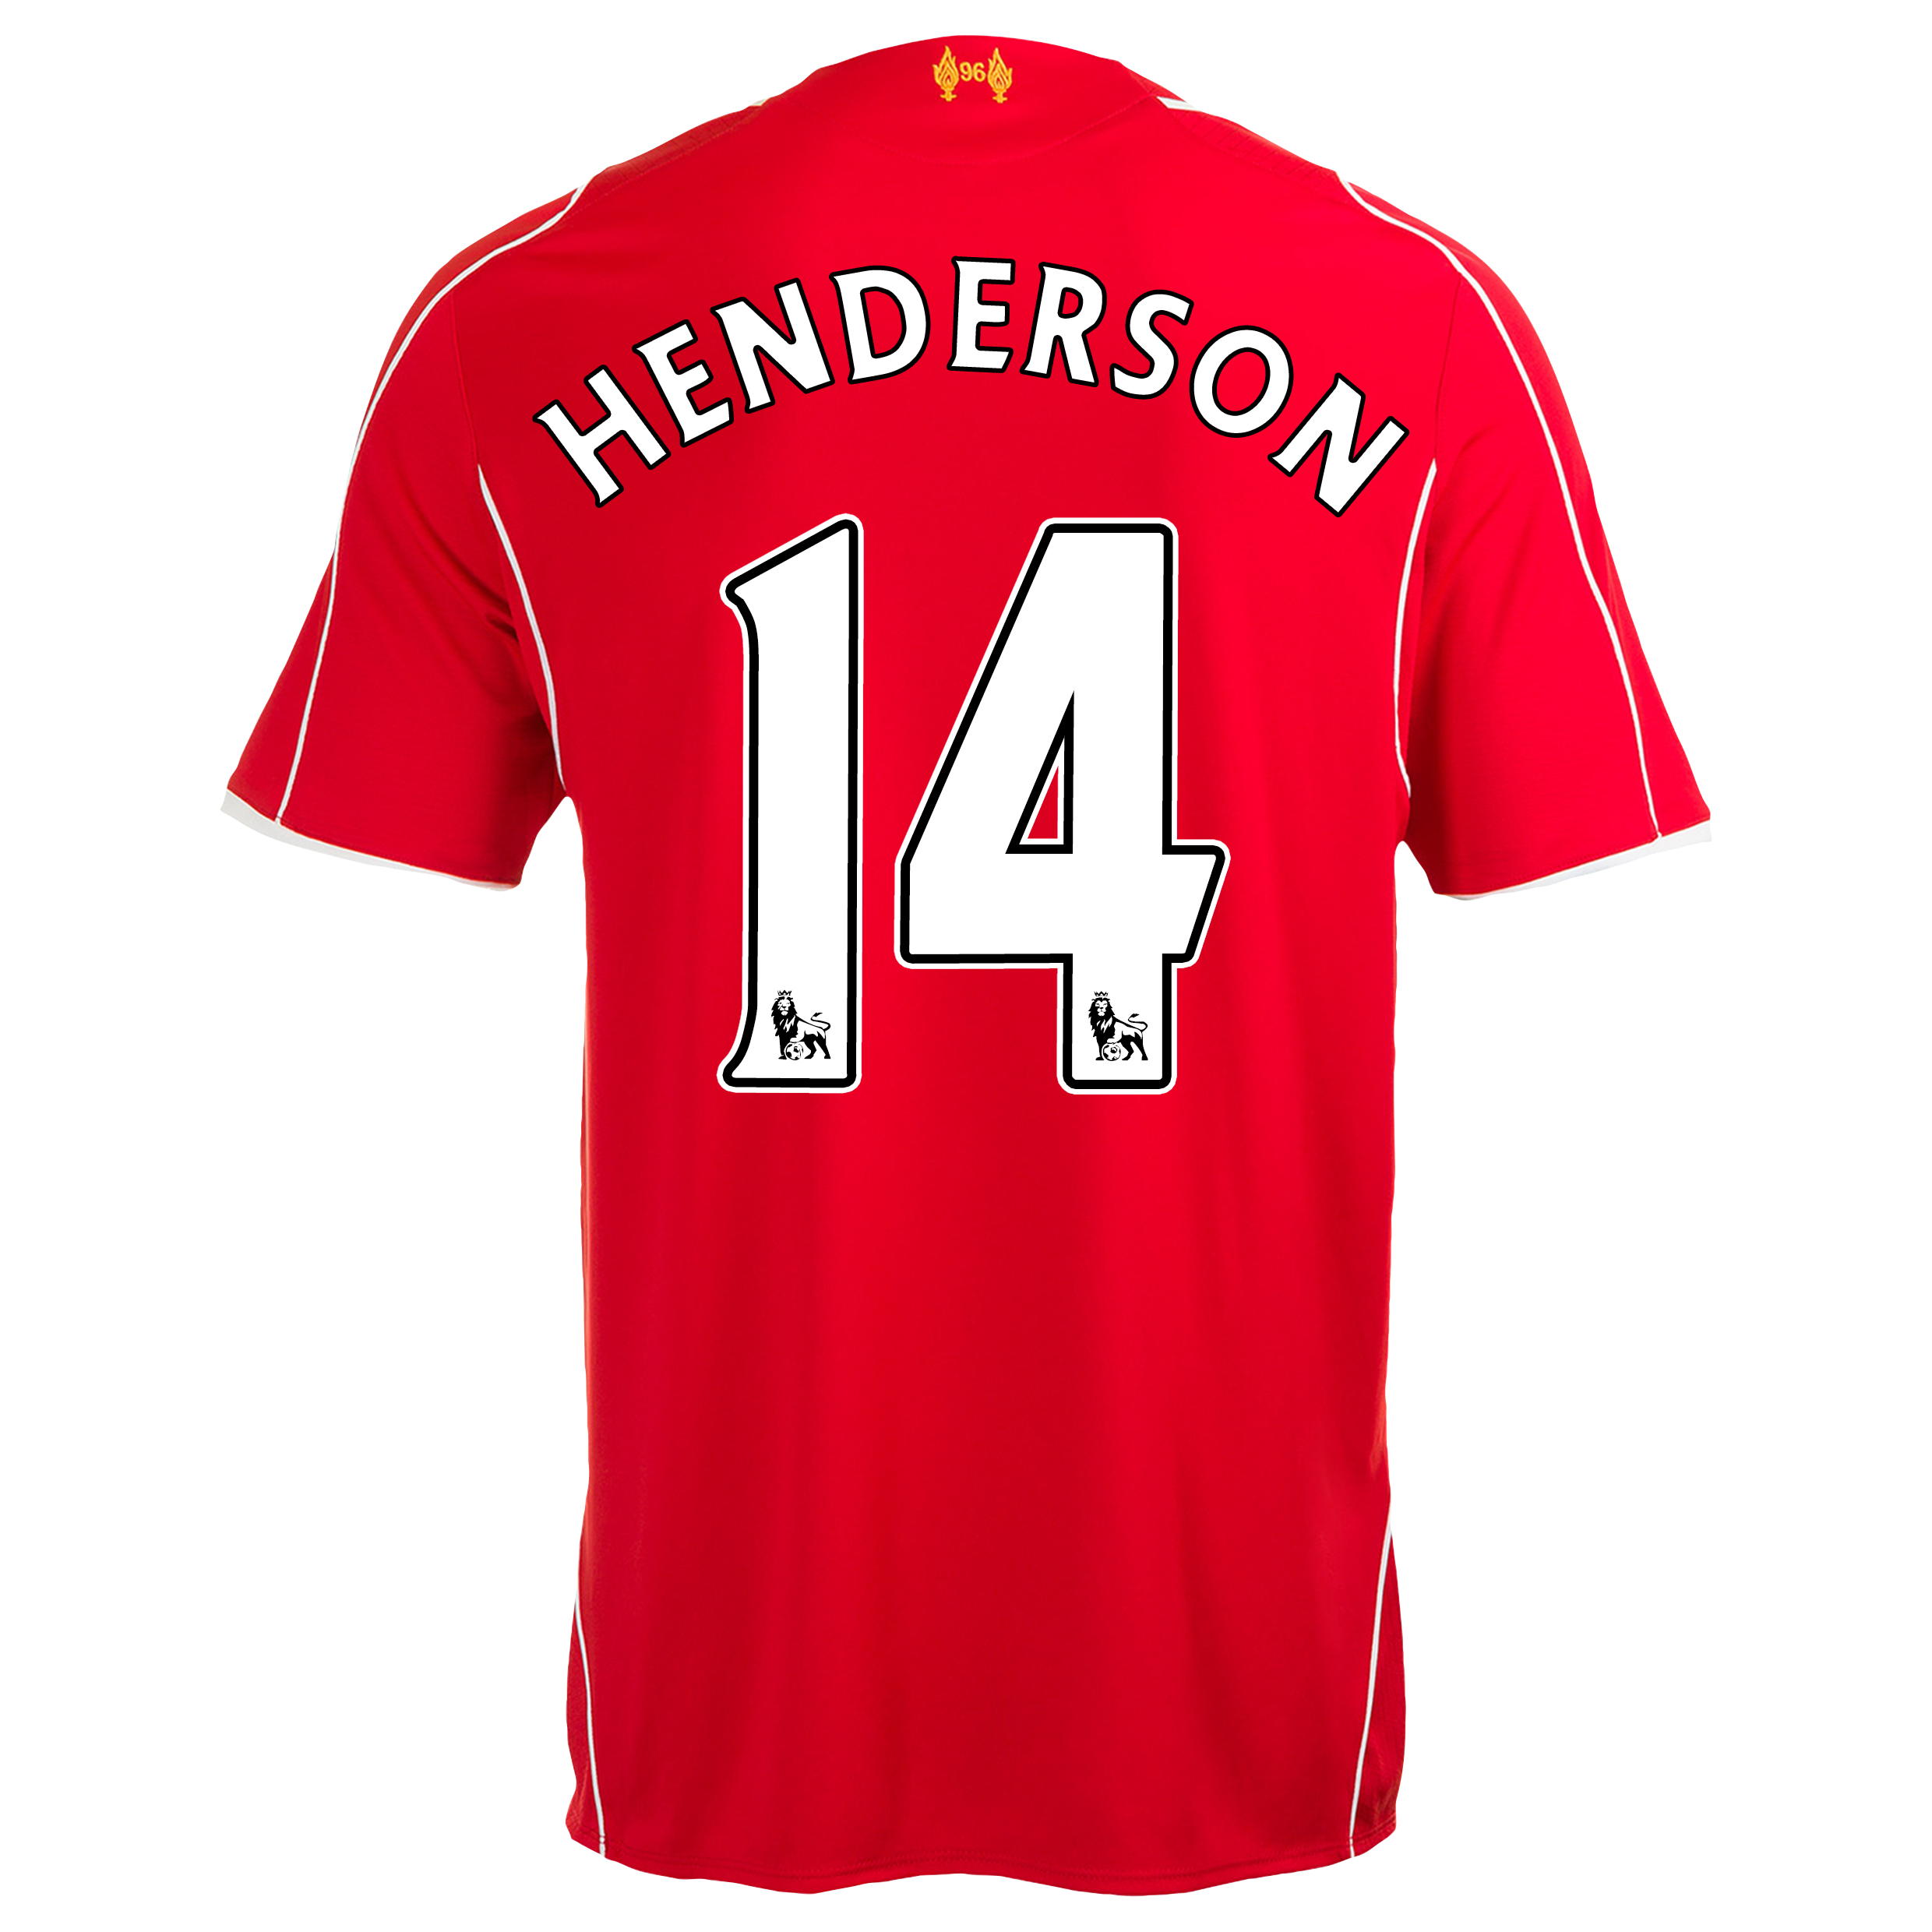 Liverpool Home Shirt 2014/15 Red with Henderson 14 printing